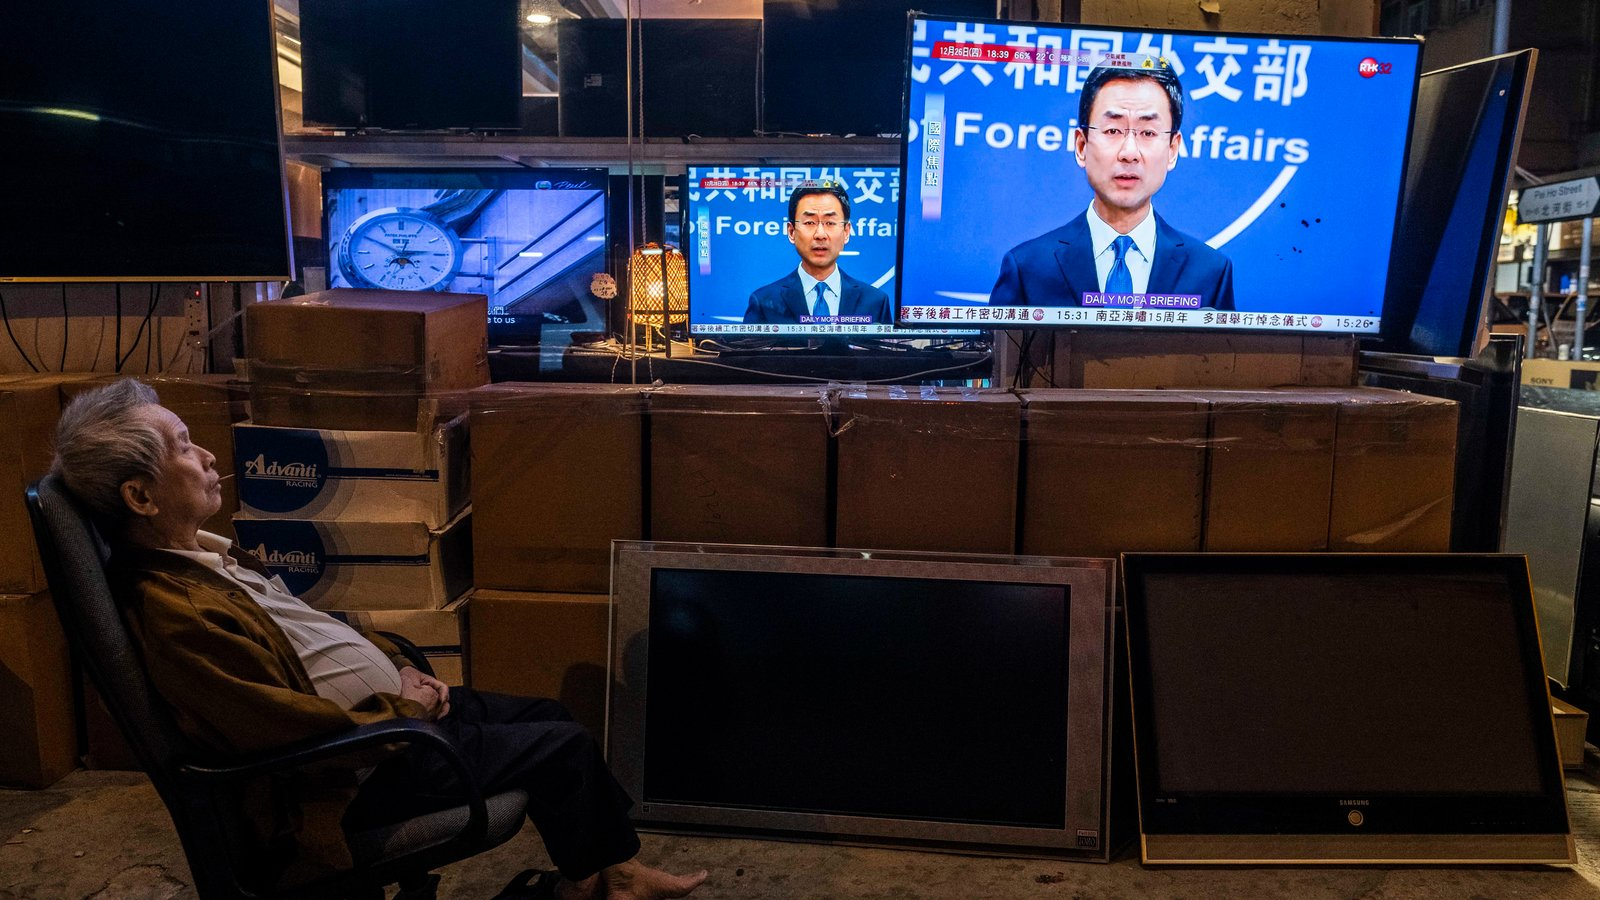 China Expels 3 Wall Street Journal Reporters as Media Relations Sour - The New York Times